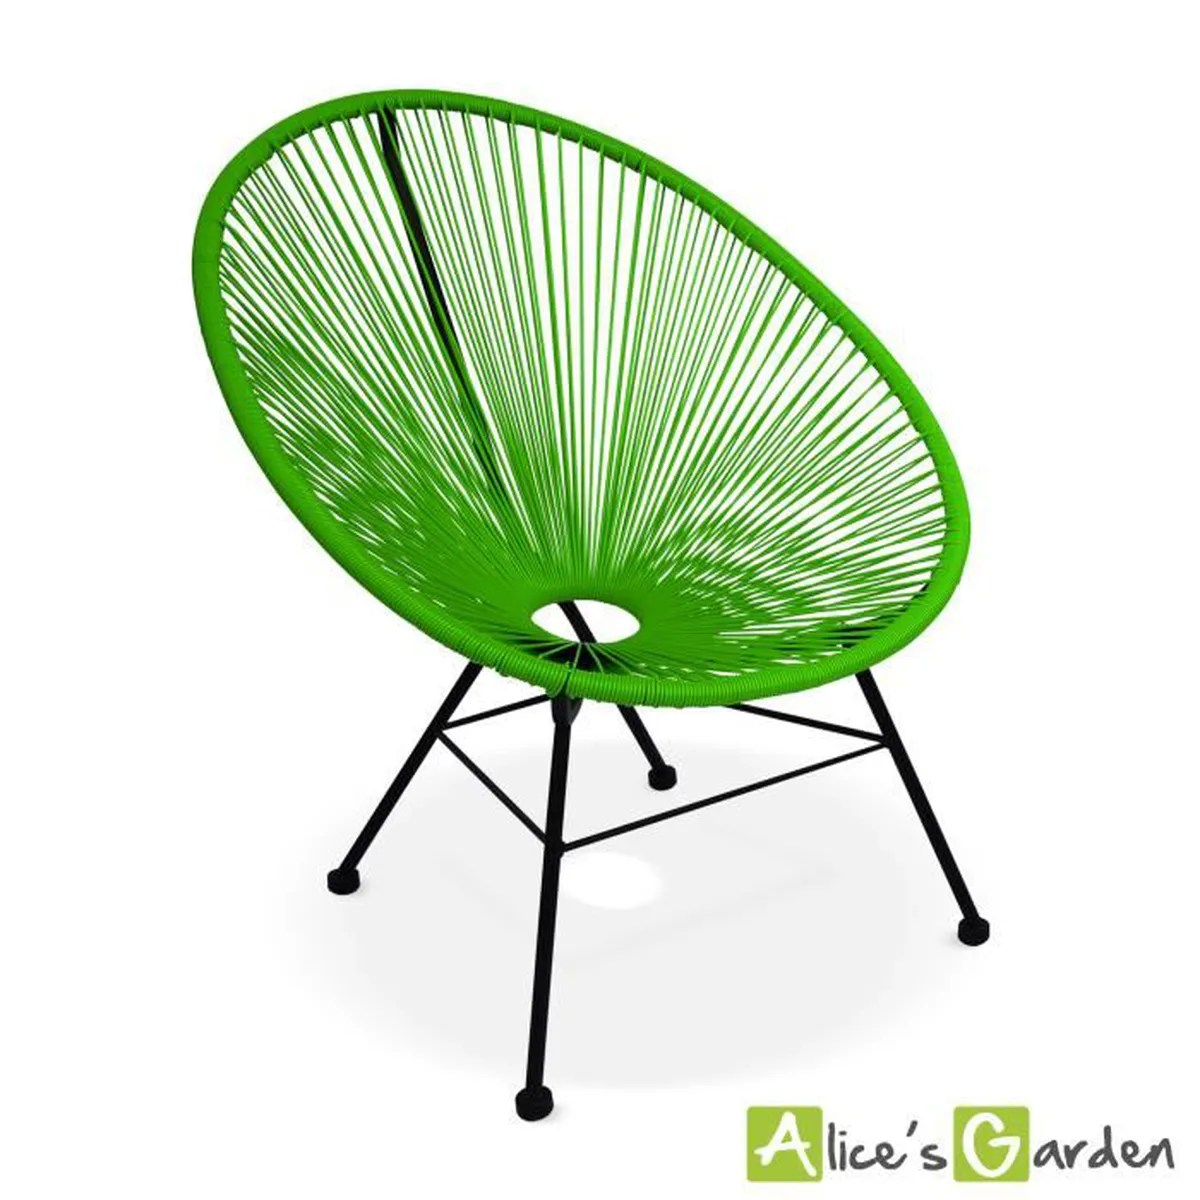 Acapulco Fauteuil Fauteuil Acapulco Chaise Oeuf Design Rétro Cordage Vert Achat